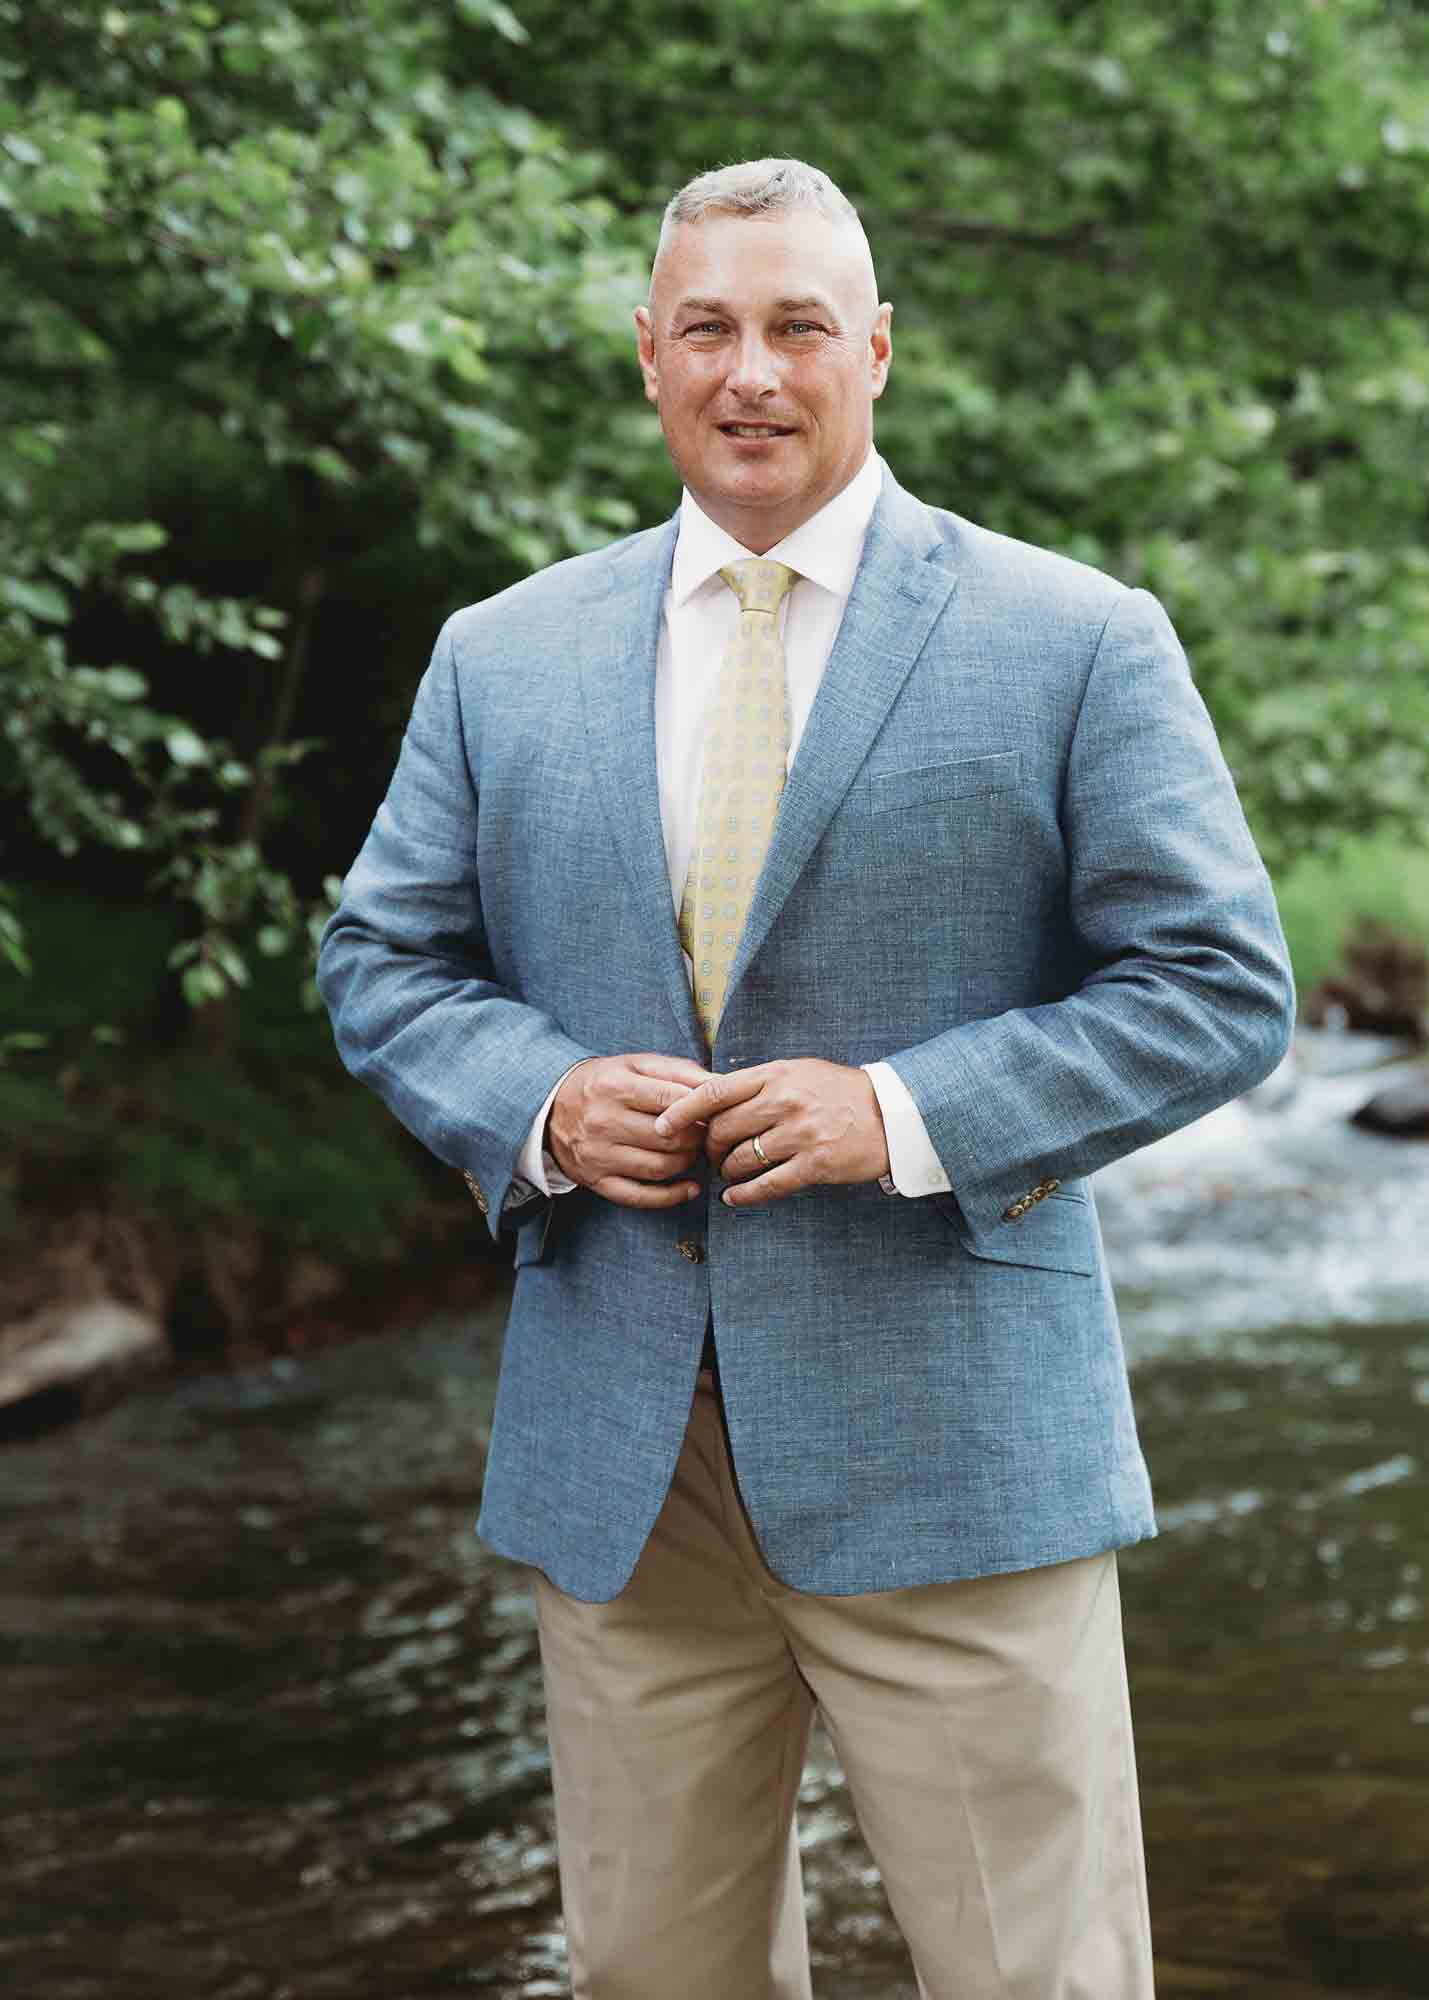 David Searcy, republican candiate for Watauga County Sheriff, poses in front of a flowing mountain river.